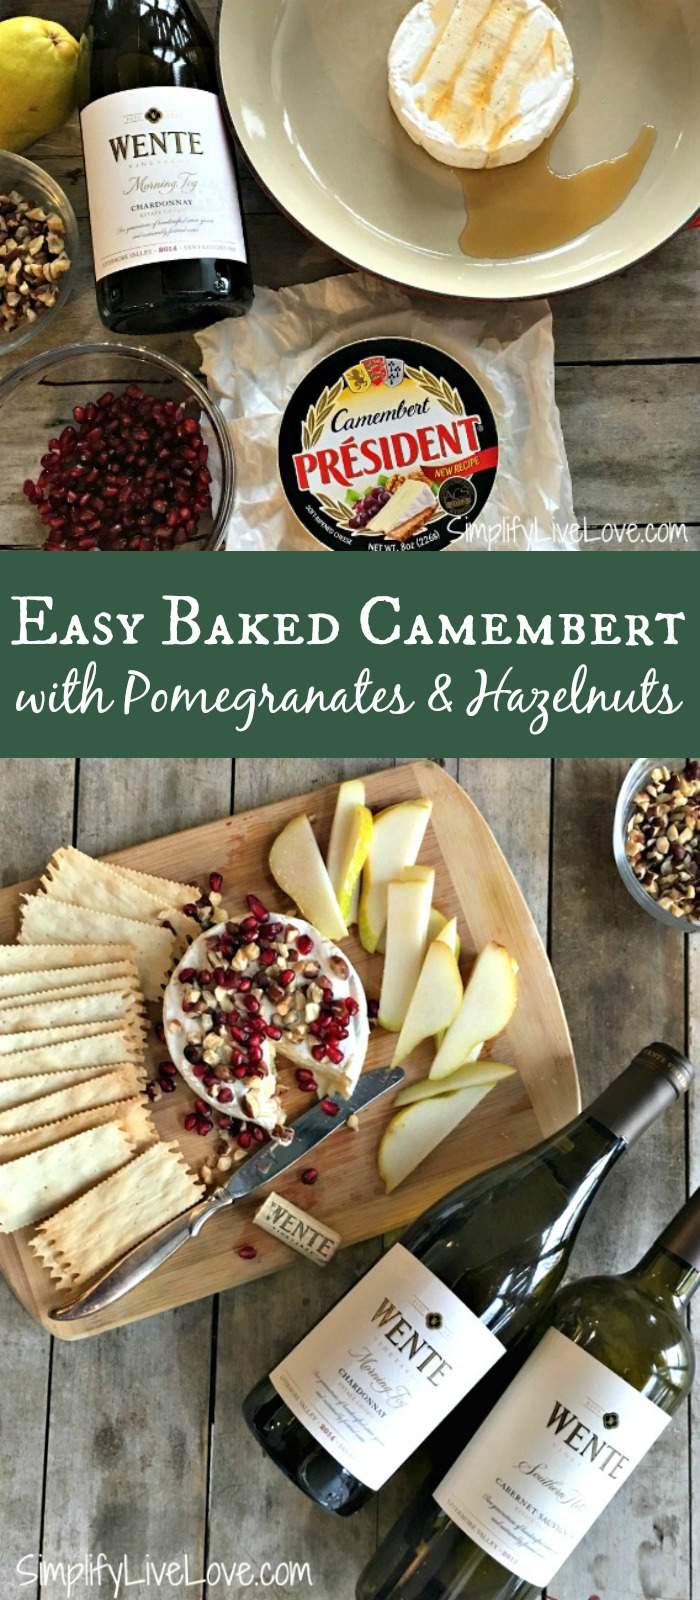 Easy Baked Camembert with Pomegranates and Hazelnuts makes a fabulous appetizer that's as delicious as it is quick! Perfect for your holiday gathering or friend party! #appetizer #camembert #bakedcheese #holidayappetizer #quickappetizer